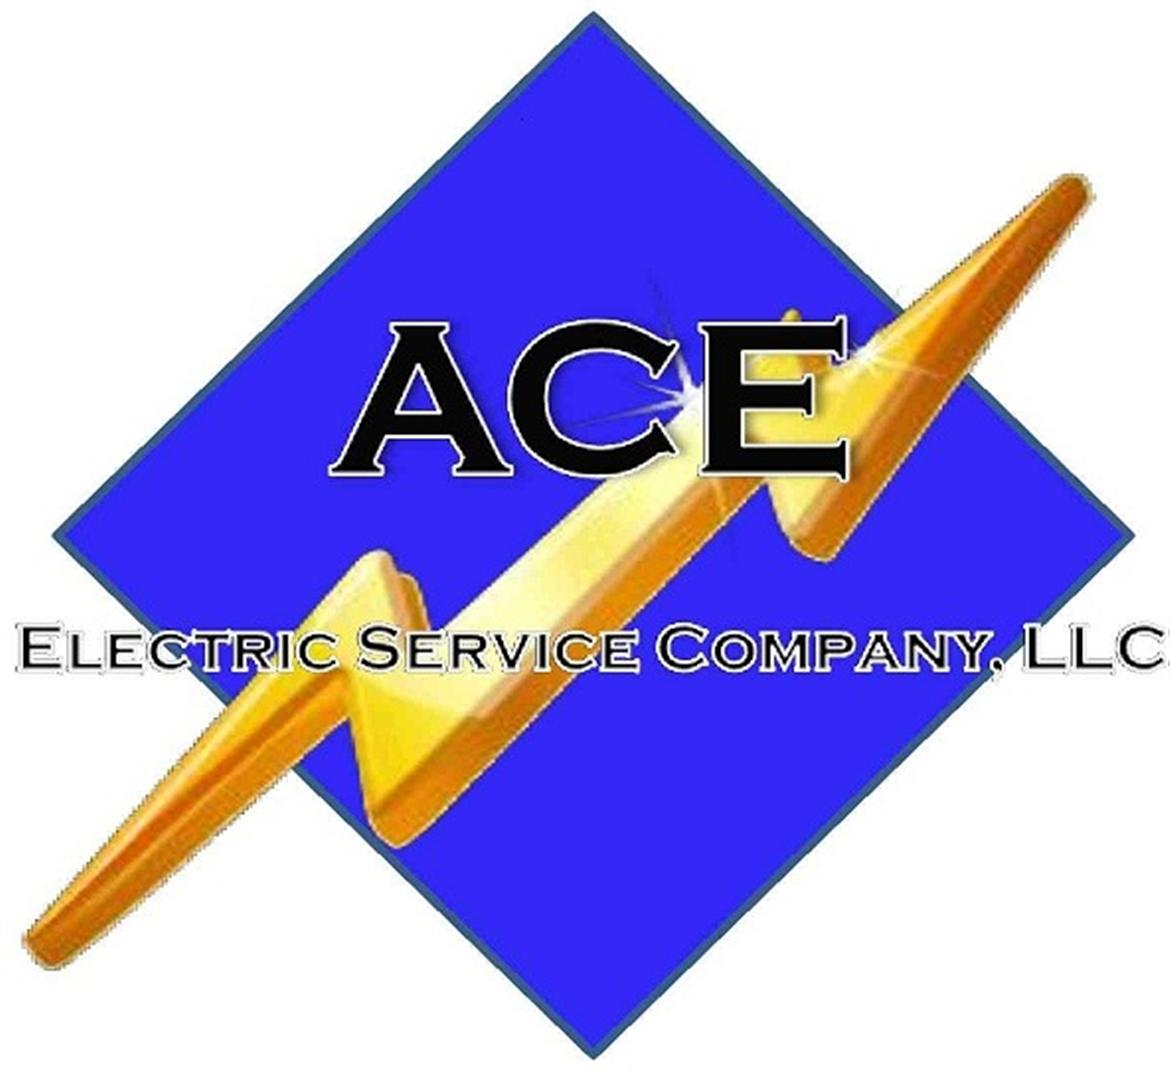 Ace Electric Service